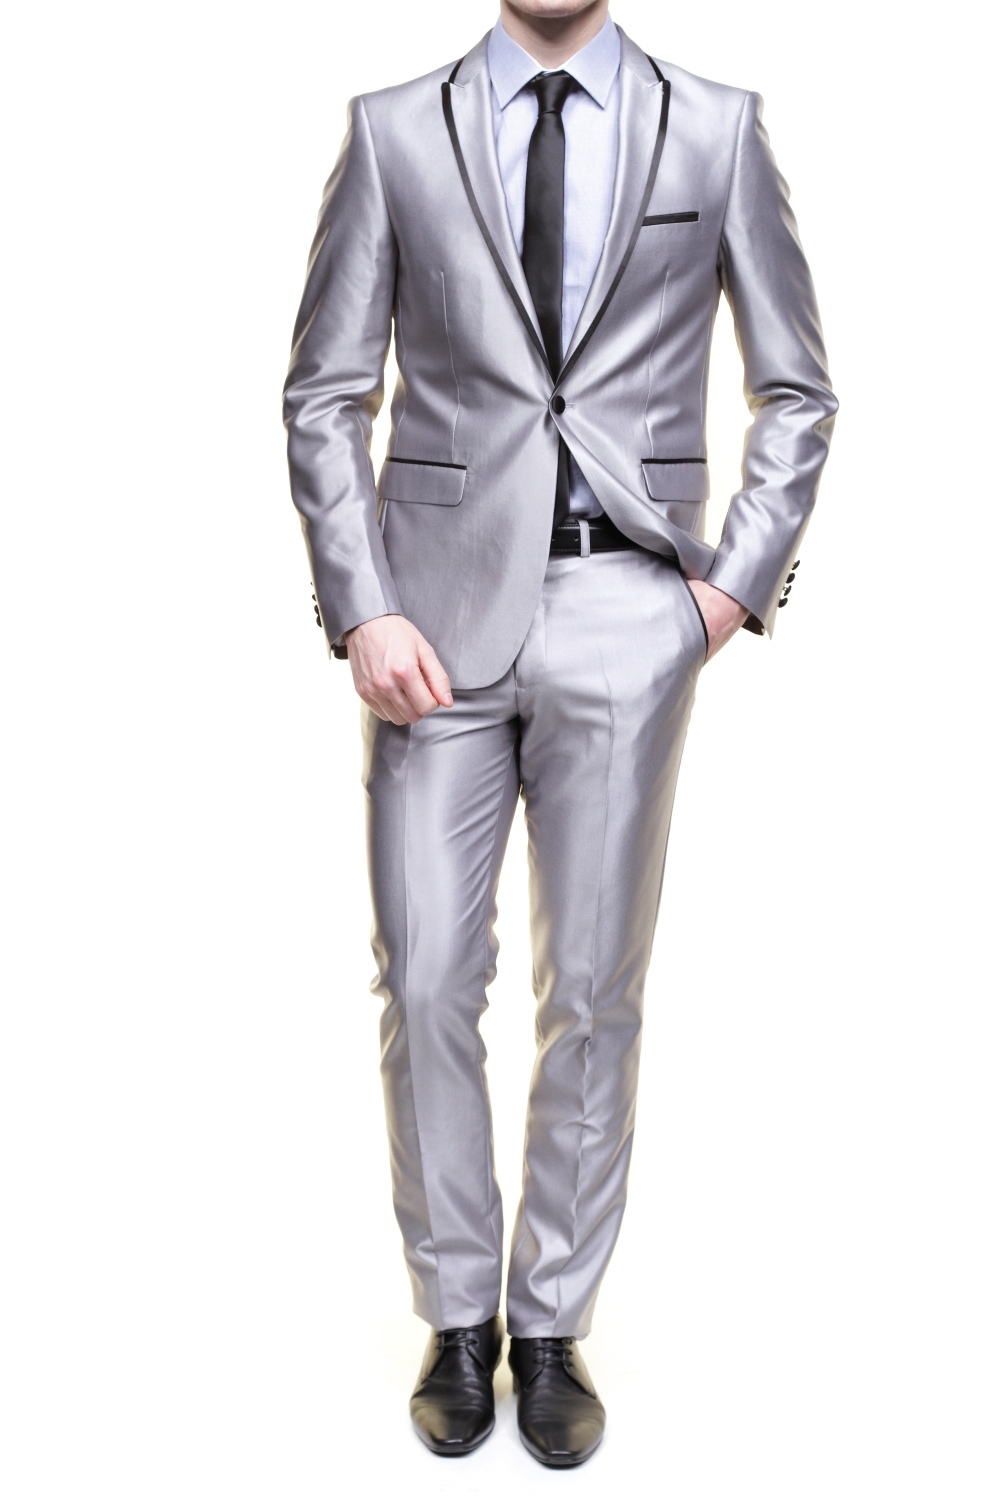 http://www.leadermode.com/91752/jean-louis-scherrer-sch052-vogue-light-grey.jpg